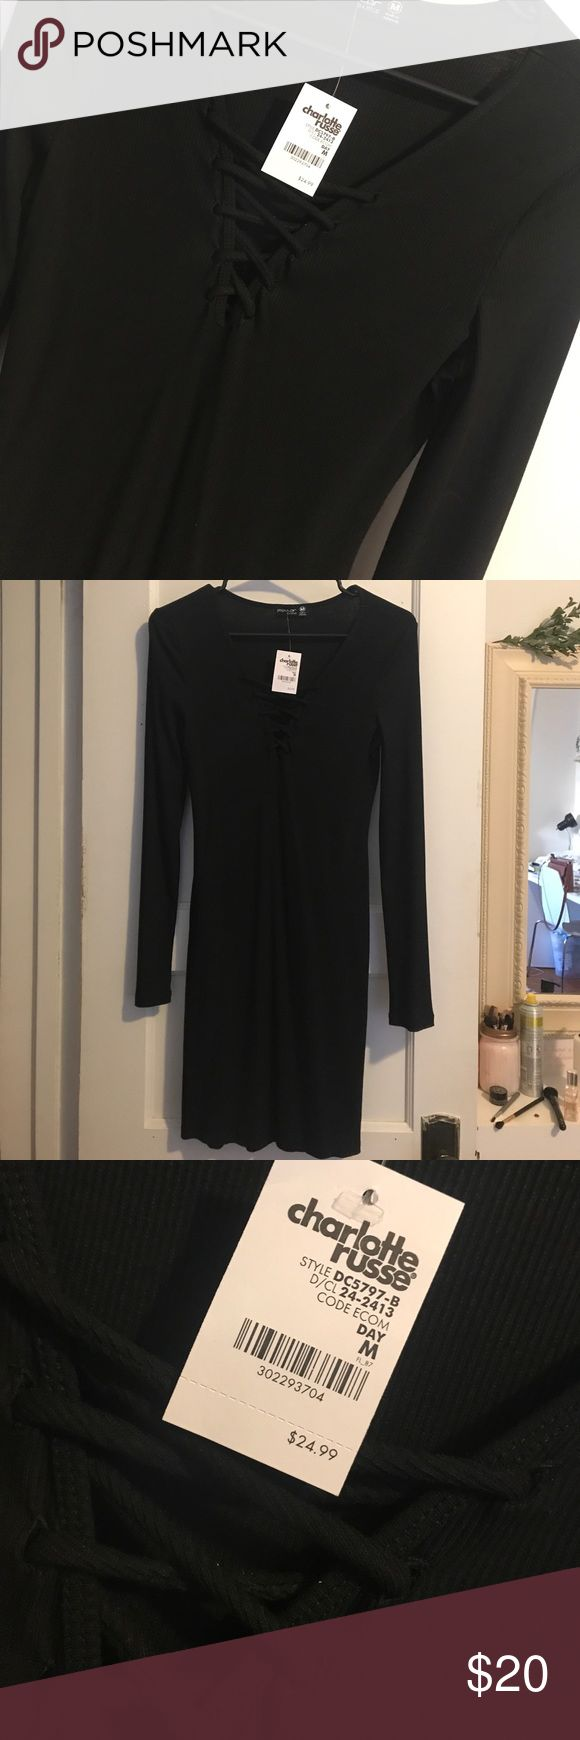 Charlotte Rousse black long sleeved body-con dress Black long sleeved body-con dress with crisscrossing strings in the front. Never worn, with tags and in good condition. Dresses Long Sleeve